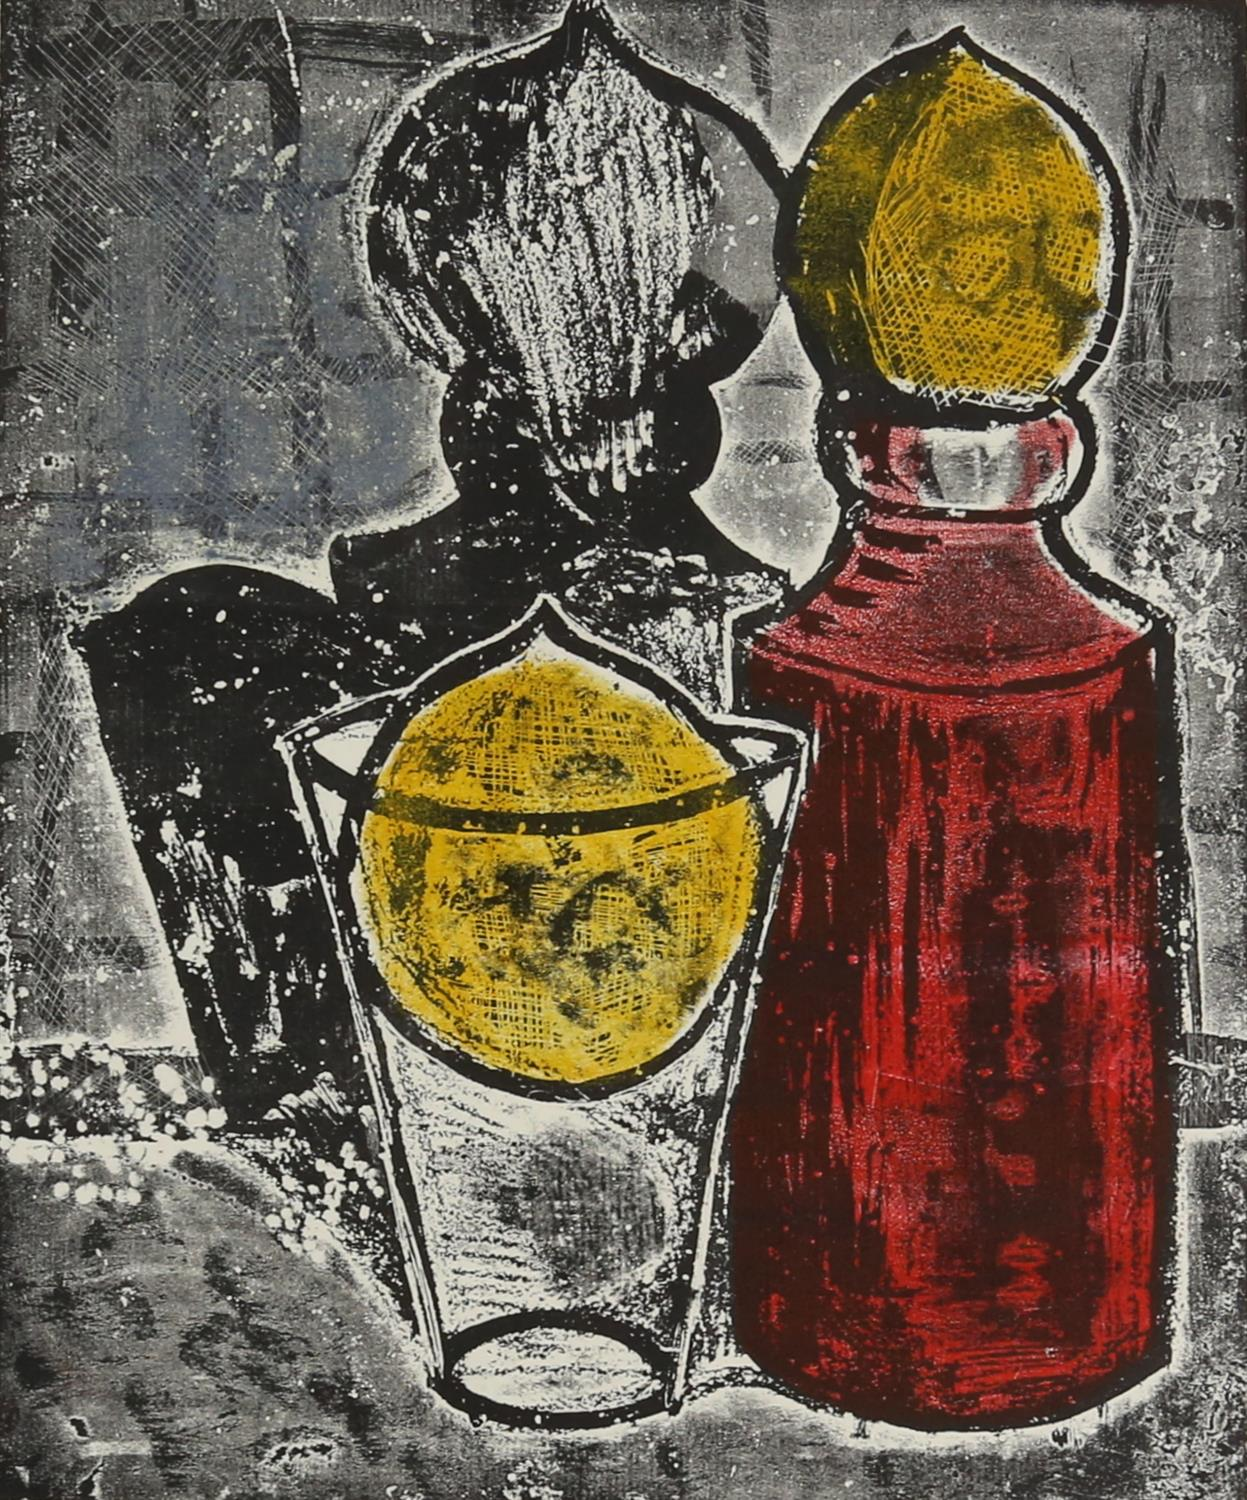 John Keen (British, 1924-2019). 'Bottle Glass & Two Lemons', print in colours, signed and titled.